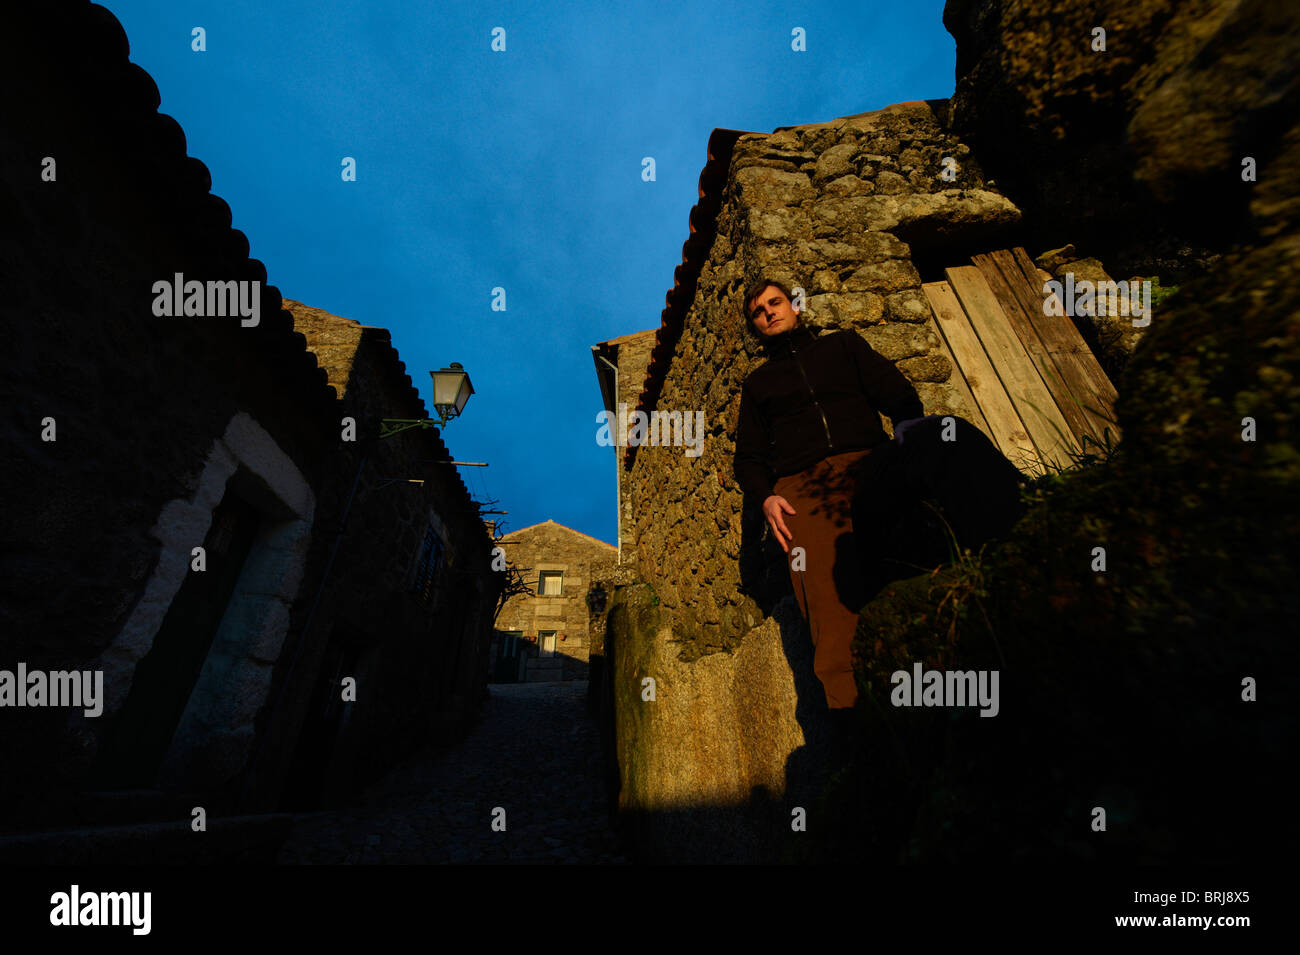 Man in front of traditional stone houses in the village of Monsanto, Portugal Stock Photo